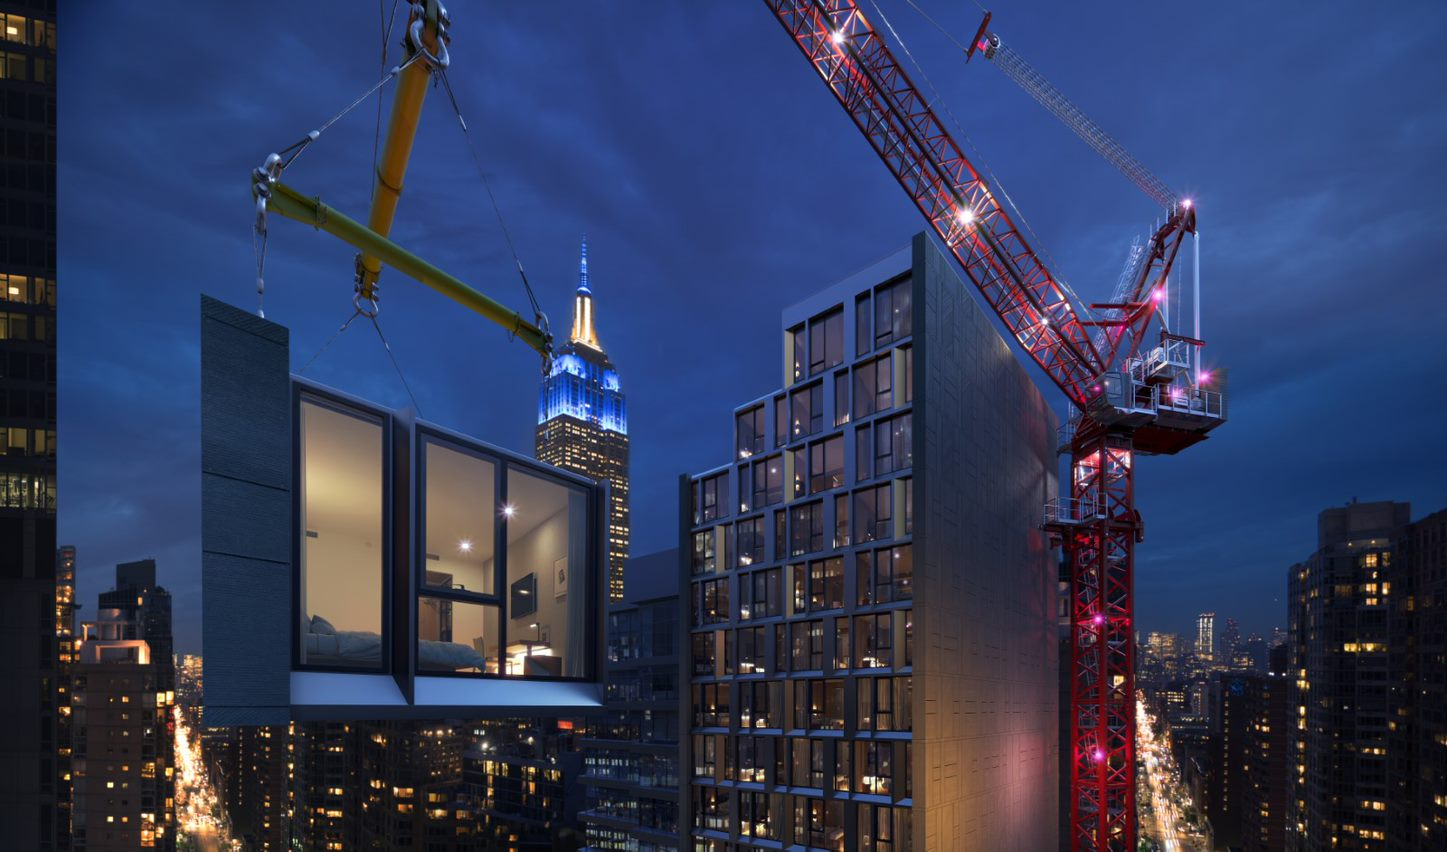 Marriot's modular hotel, The AC Hotel New York NoMad